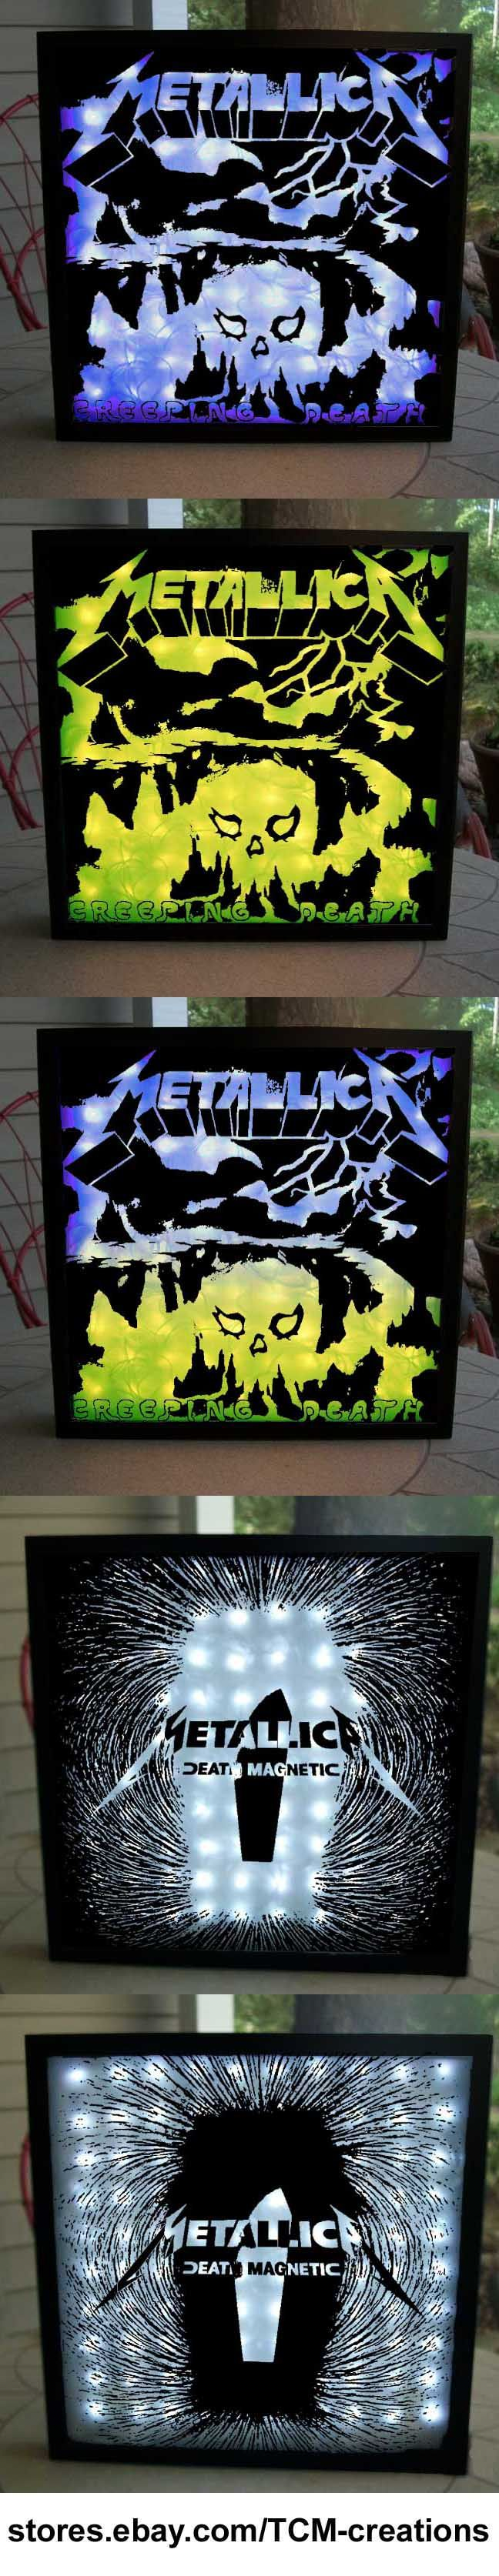 Metallica Shadow Boxes with LED lighting.  James Hetfield, Cliff Burton, Jason Newstead, Robert Trujillo, Kirk Hammett, Lars Urich, Kill em All, Ride The Lightning, Master Of Puppets, And Justice For All, Load, Reload, St Anger, Death Magnetic, Hardwired... To Self Destruct.